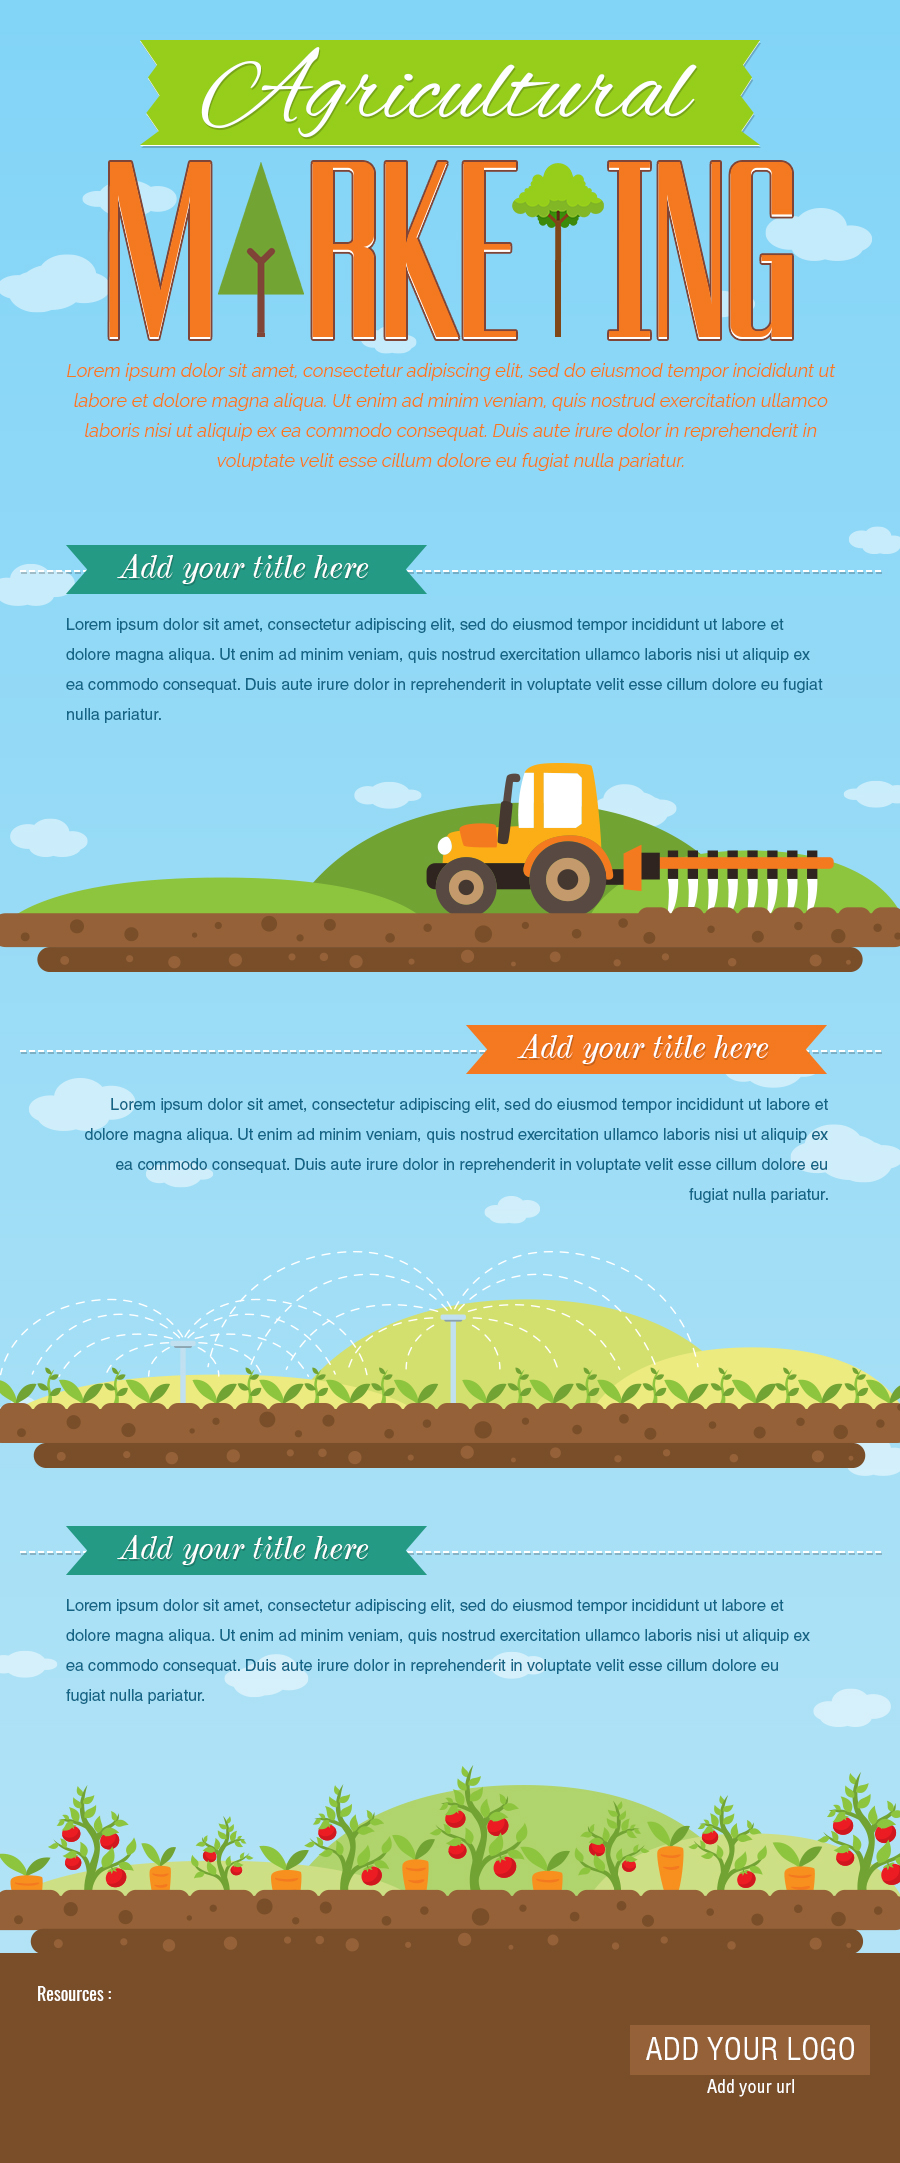 Agricultural Marketing Infographic Template - Gifographics.co